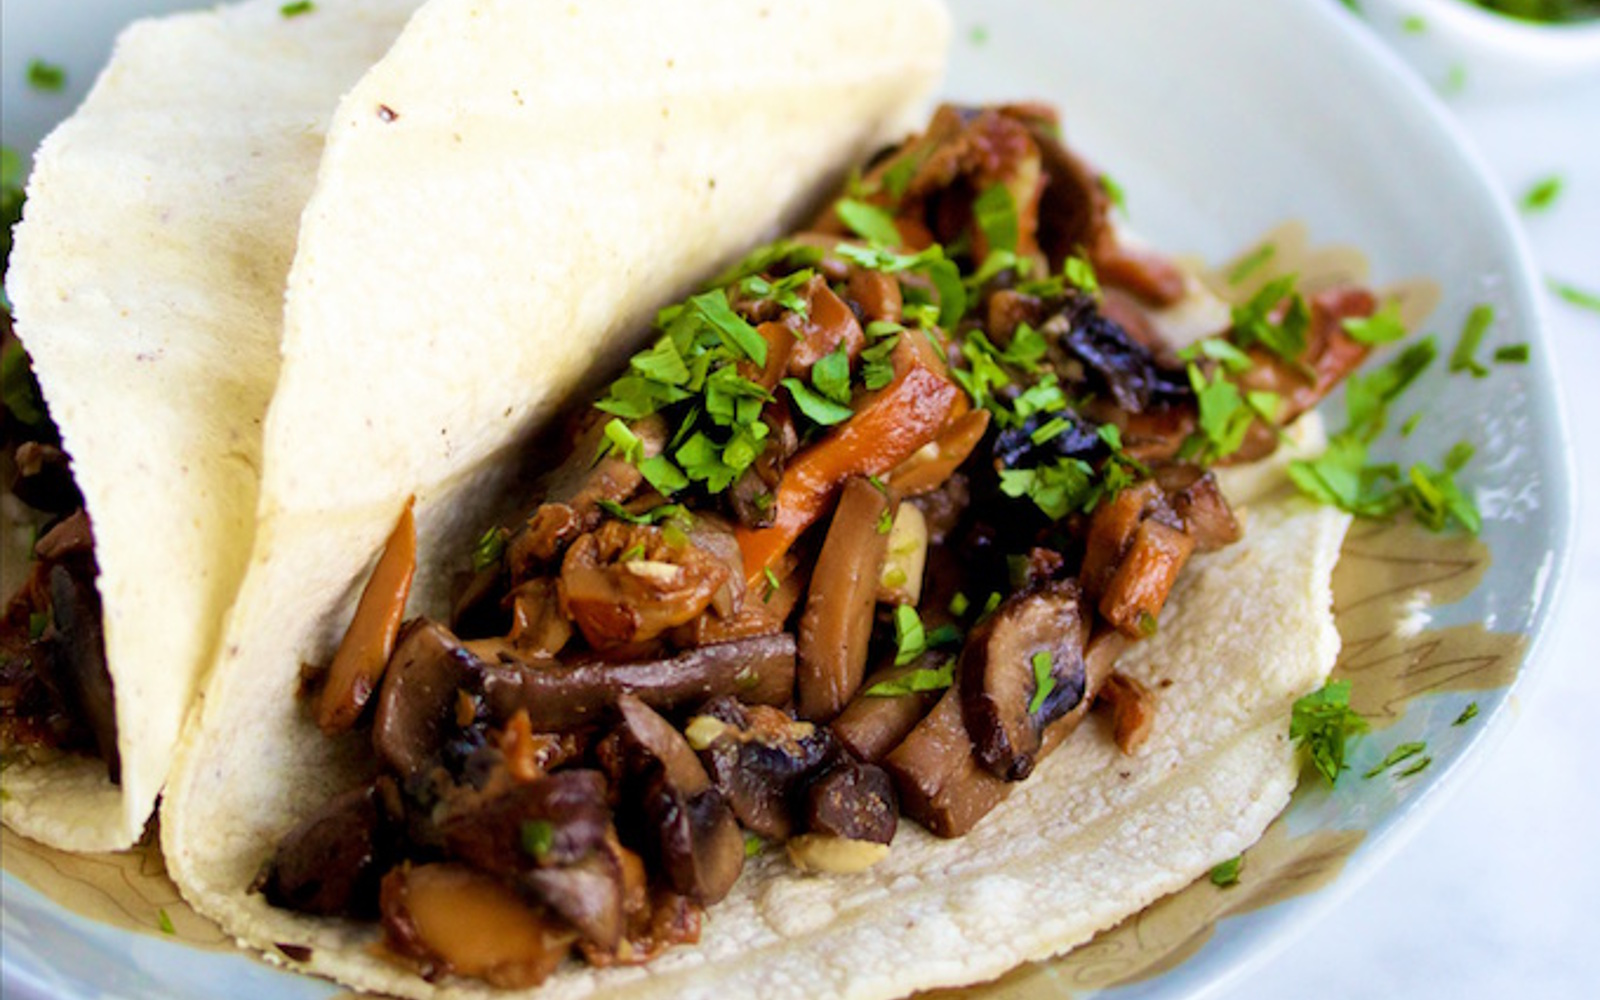 Mushroom and Garlic Tacos